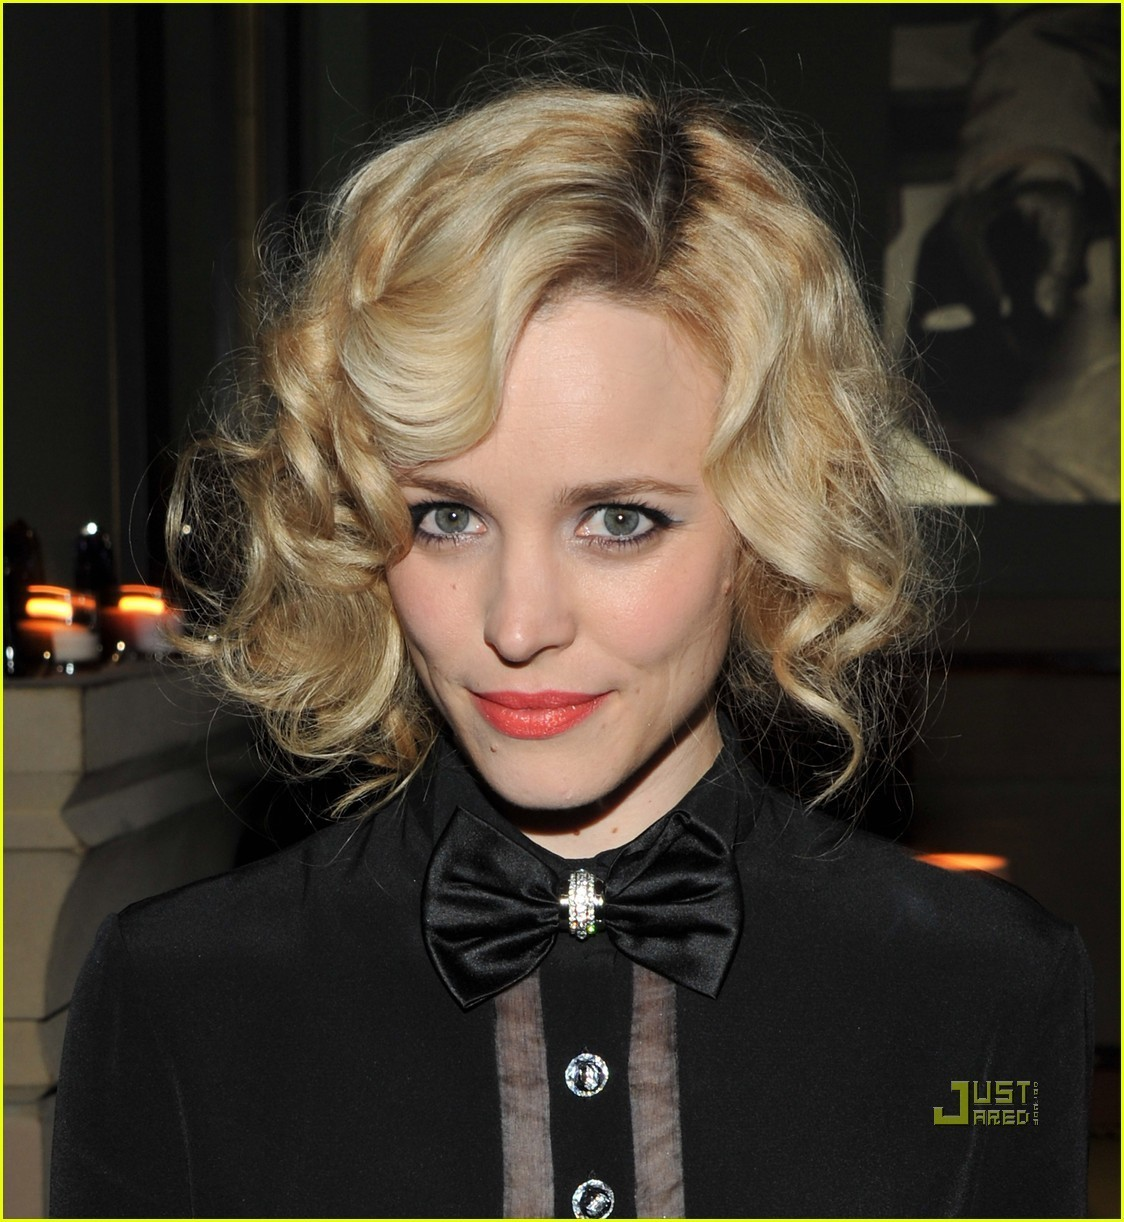 http://2.bp.blogspot.com/-lbX-mH-SZFY/T-nzclilyOI/AAAAAAAAACI/S9nOCJ1S48g/s1600/Rachel-McAdams-Midnight-in-Paris-After-Party-rachel-mcadams-22180973-1124-1222.jpg